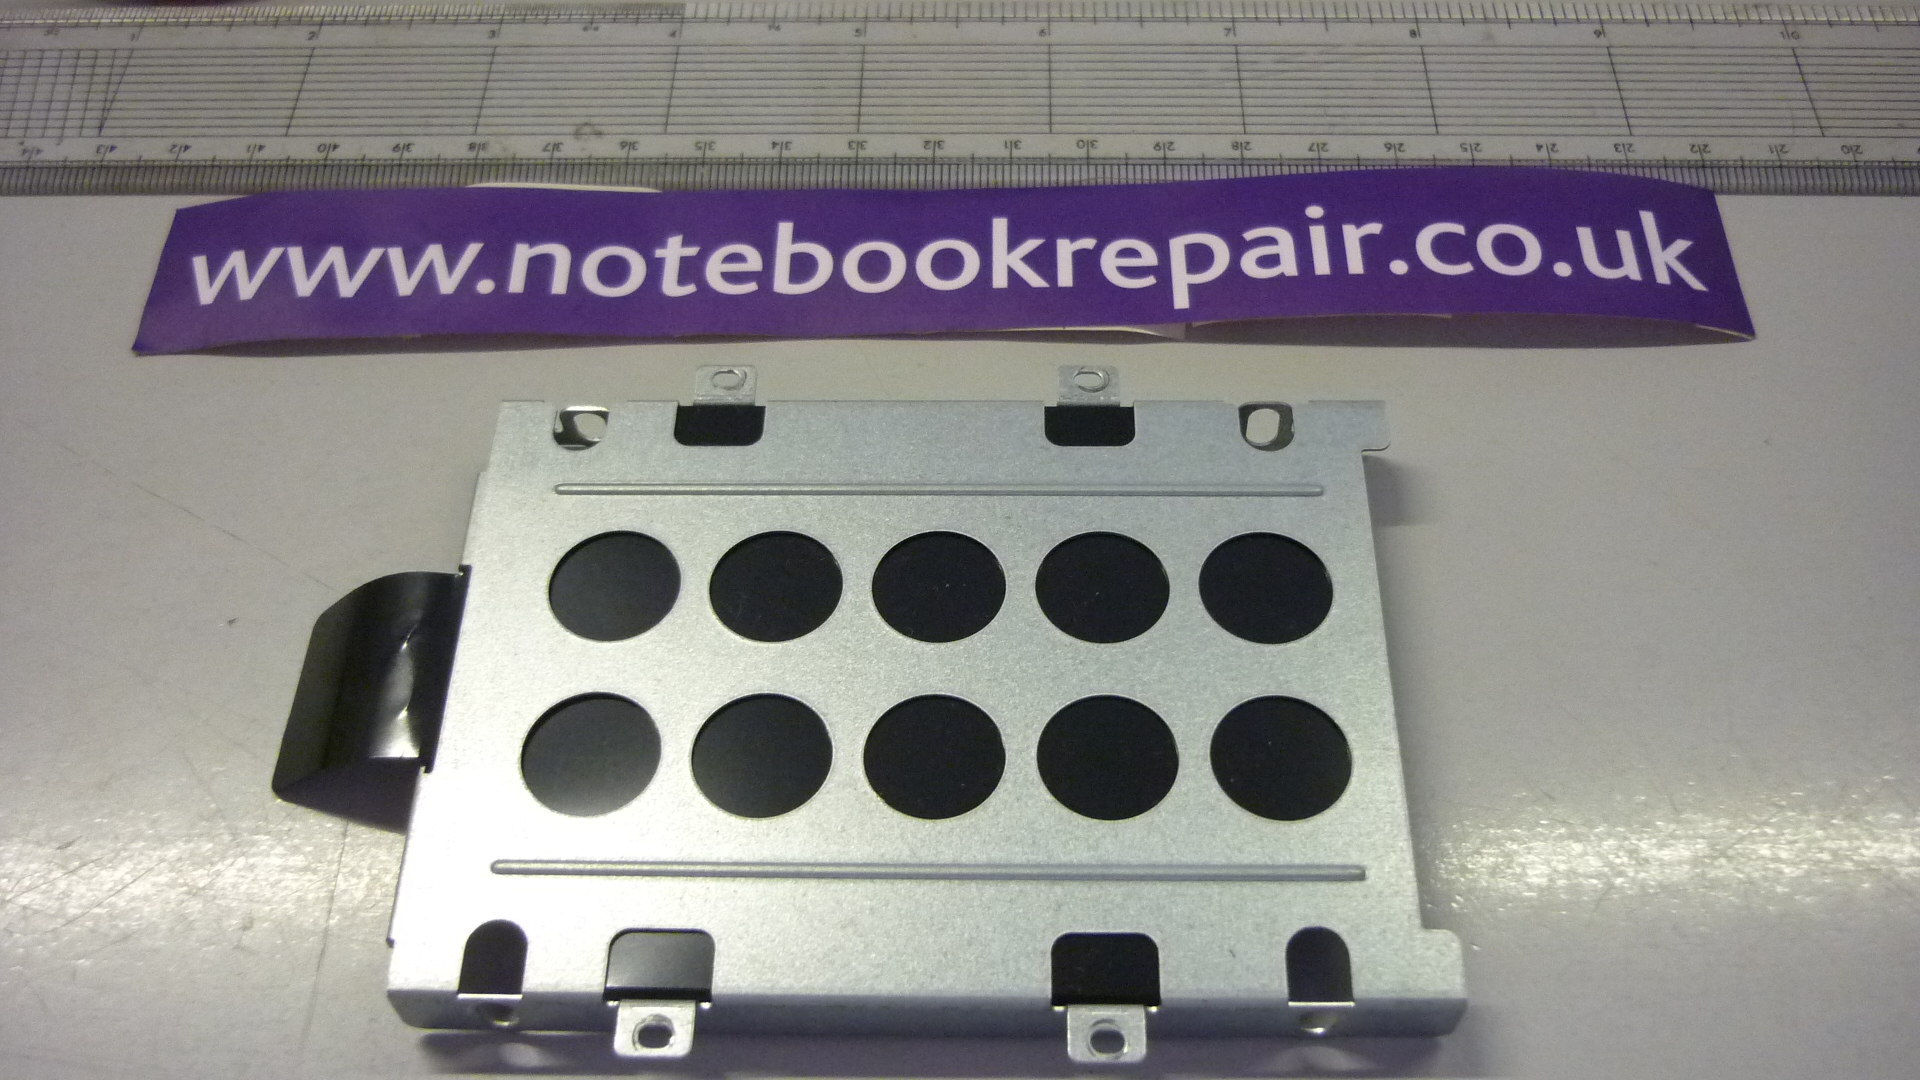 sn10 SERIES HDD TRAY